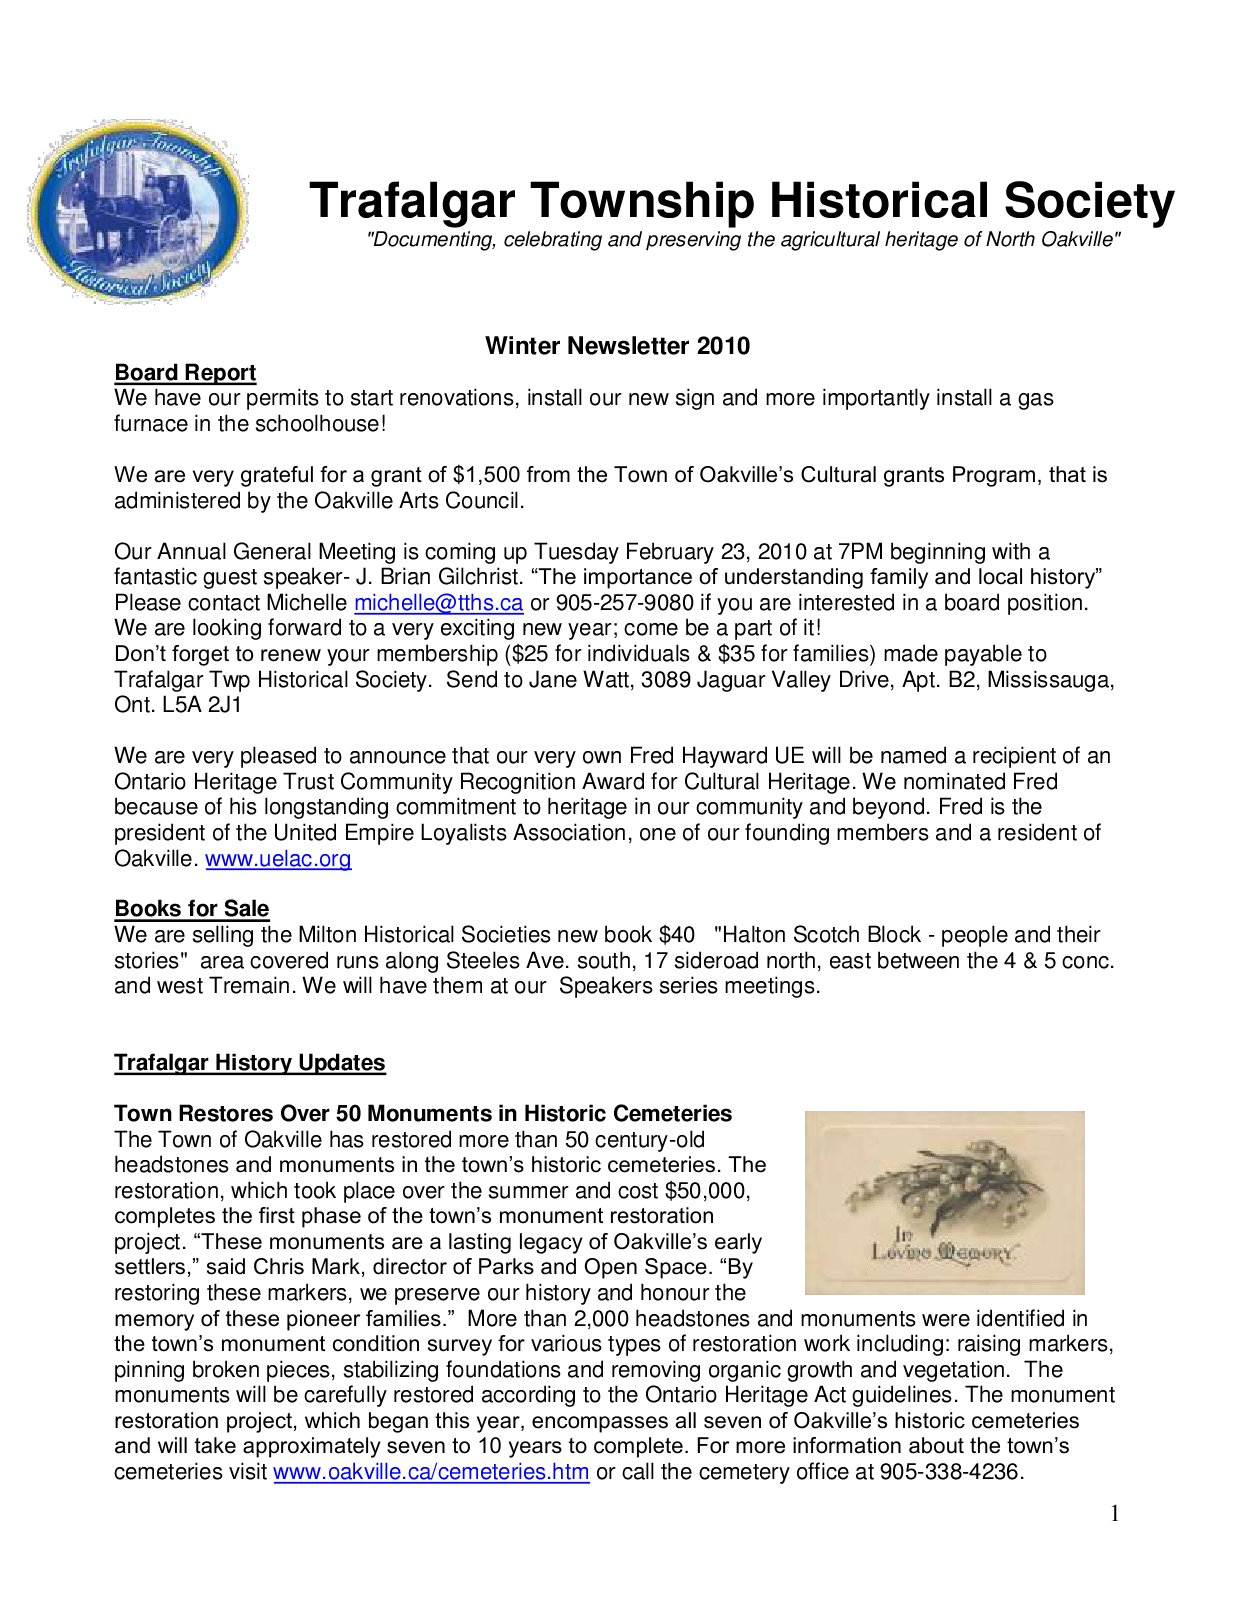 How to write a historical society newsletter